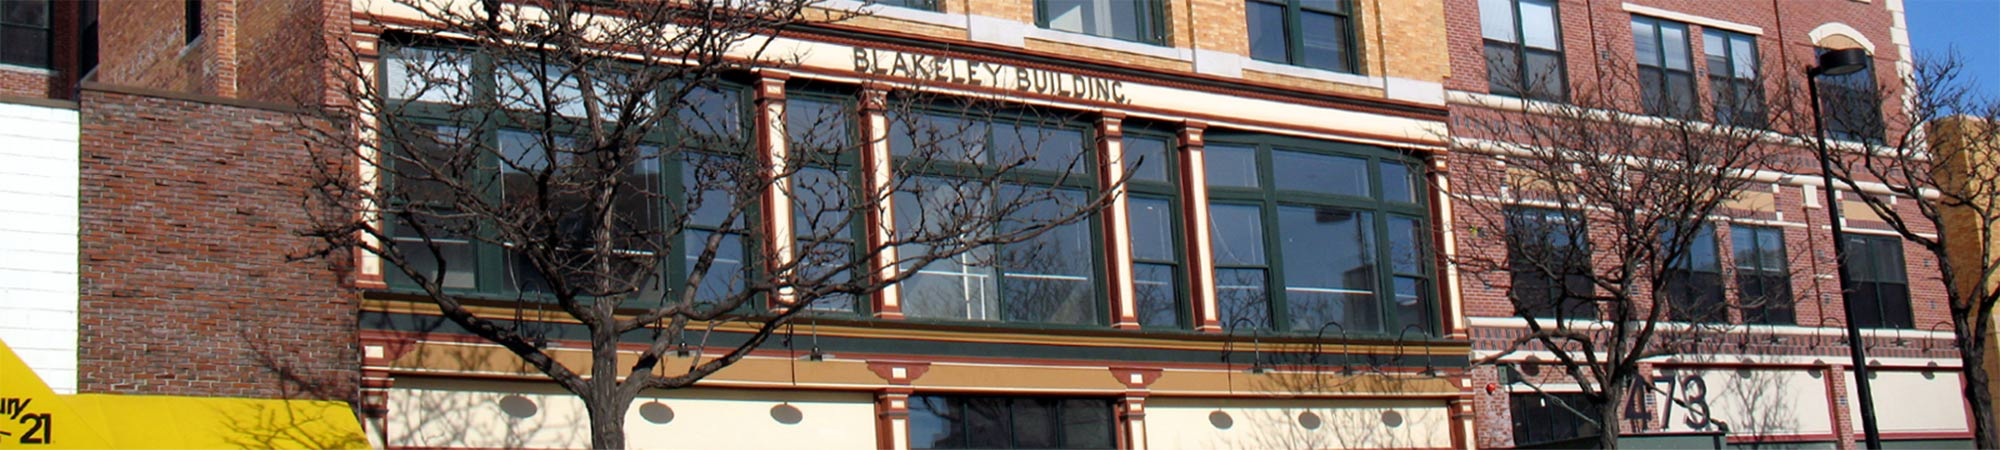 Blakely Building by L. D. Russo